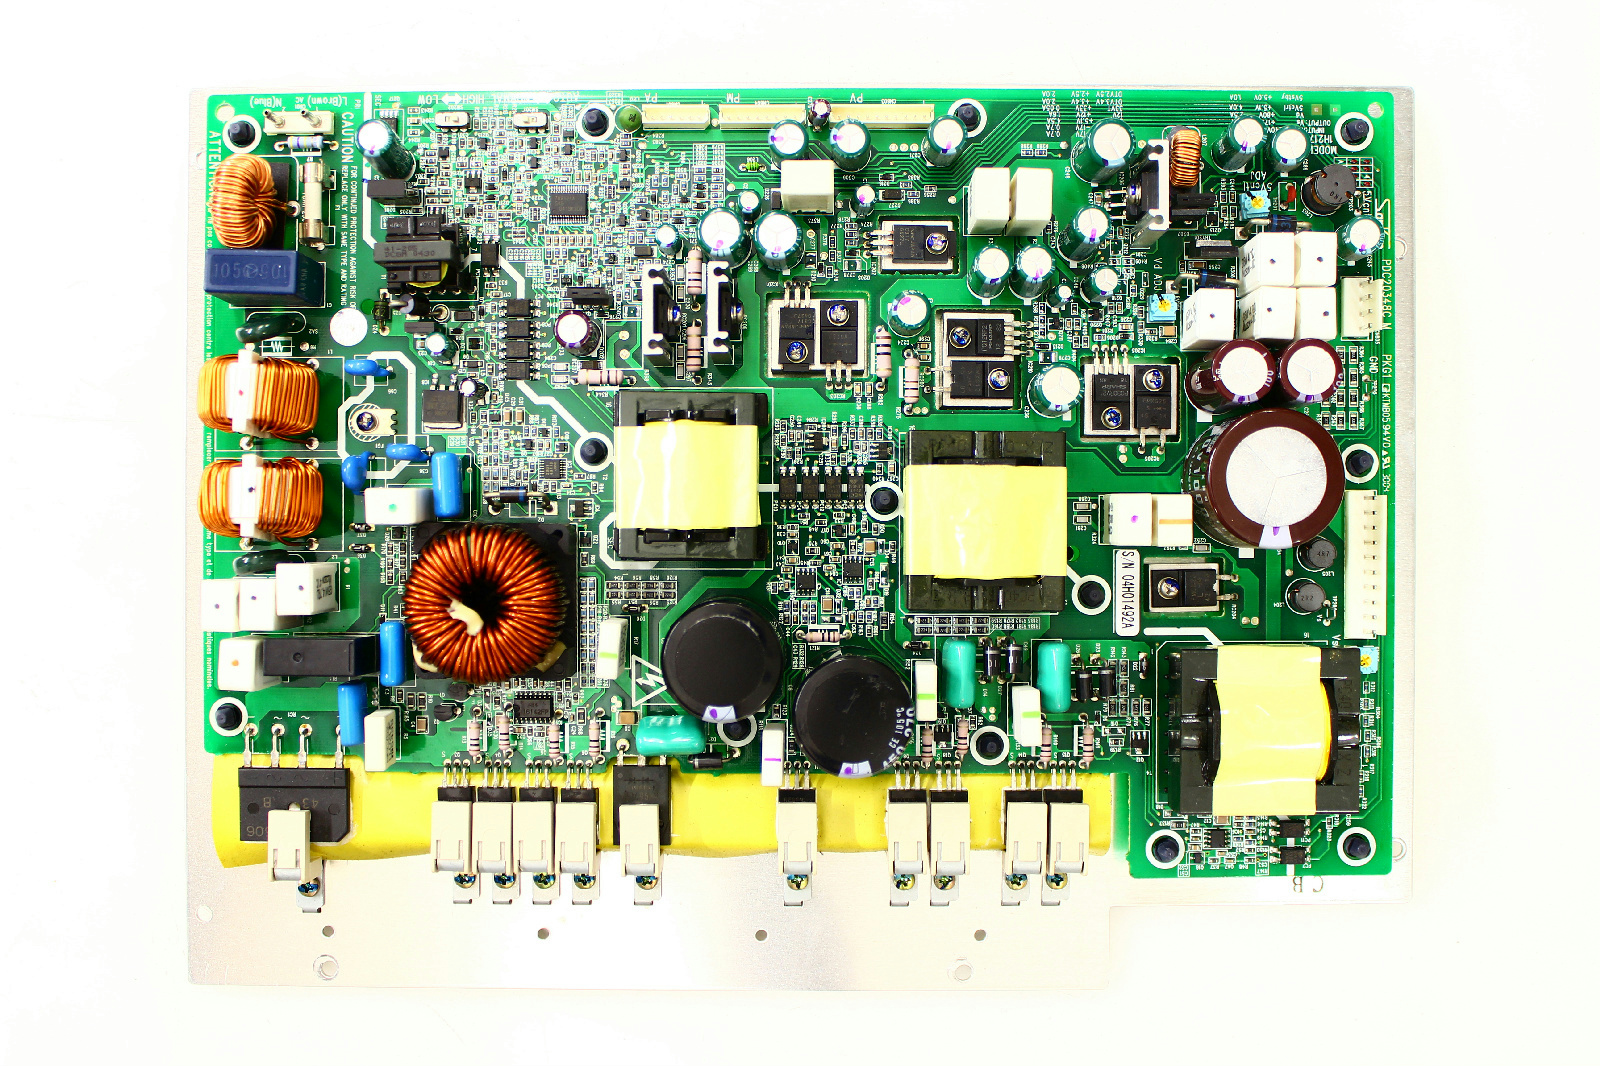 Daewoo Tv Circuit Board Wiring Diagram And Ebooks Bn 96 Samsung Power Supply Schematic Electro Dt 4280nh Pdc20348c Tvparts At Tvpartsinstock Rh Com Magnavox Boards Elsw3917bf